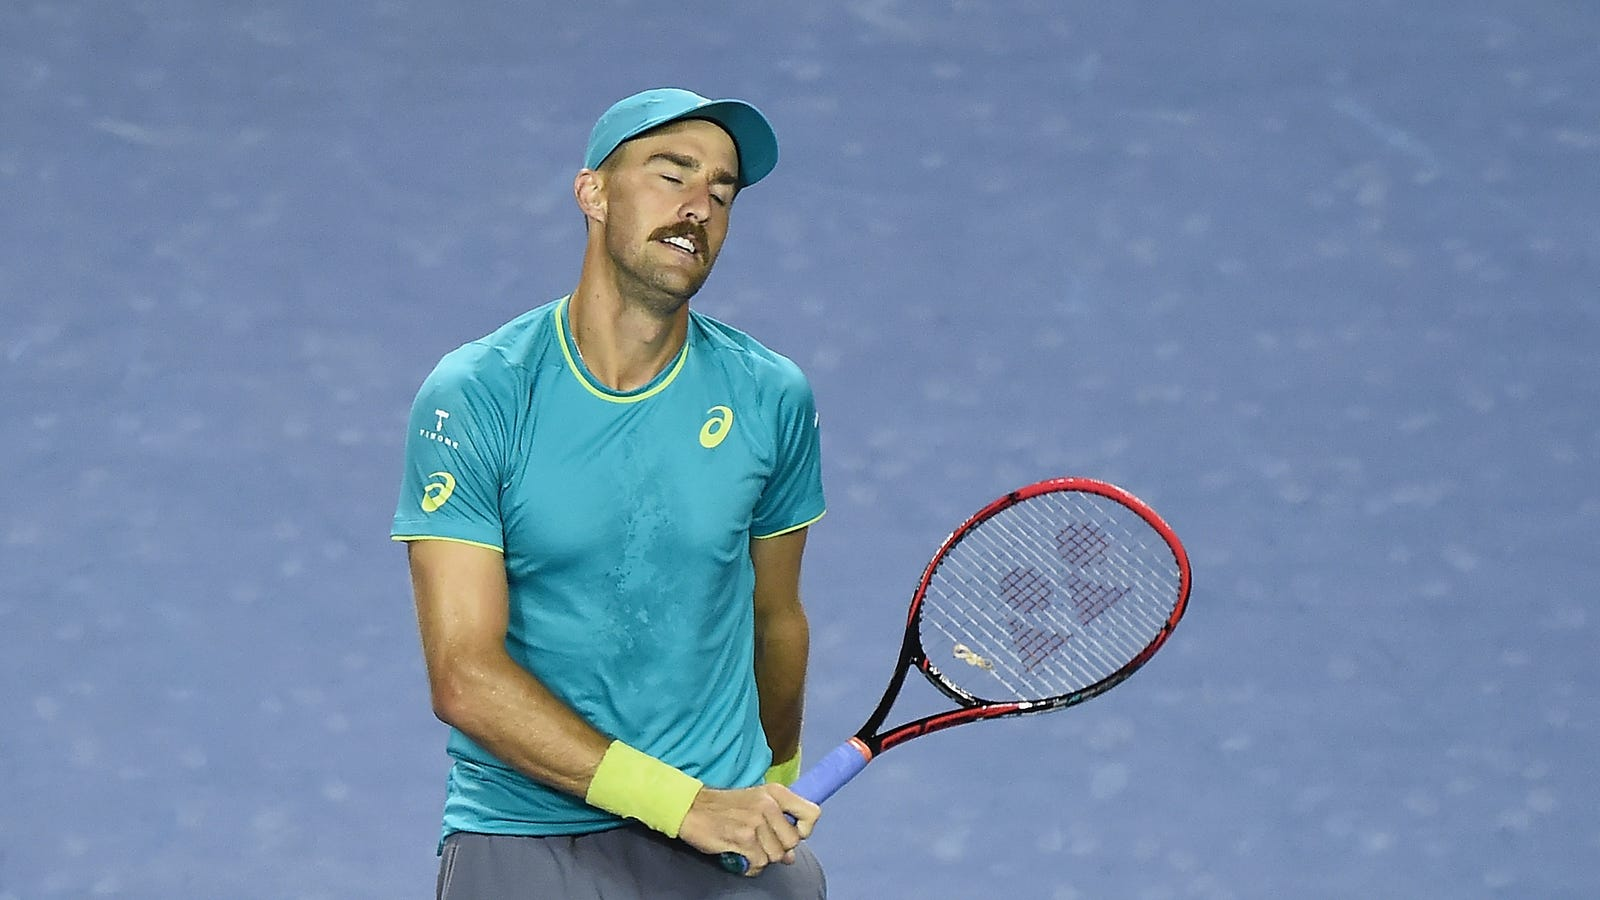 American Tennis Player Resembles Luigi During Biggest Win His